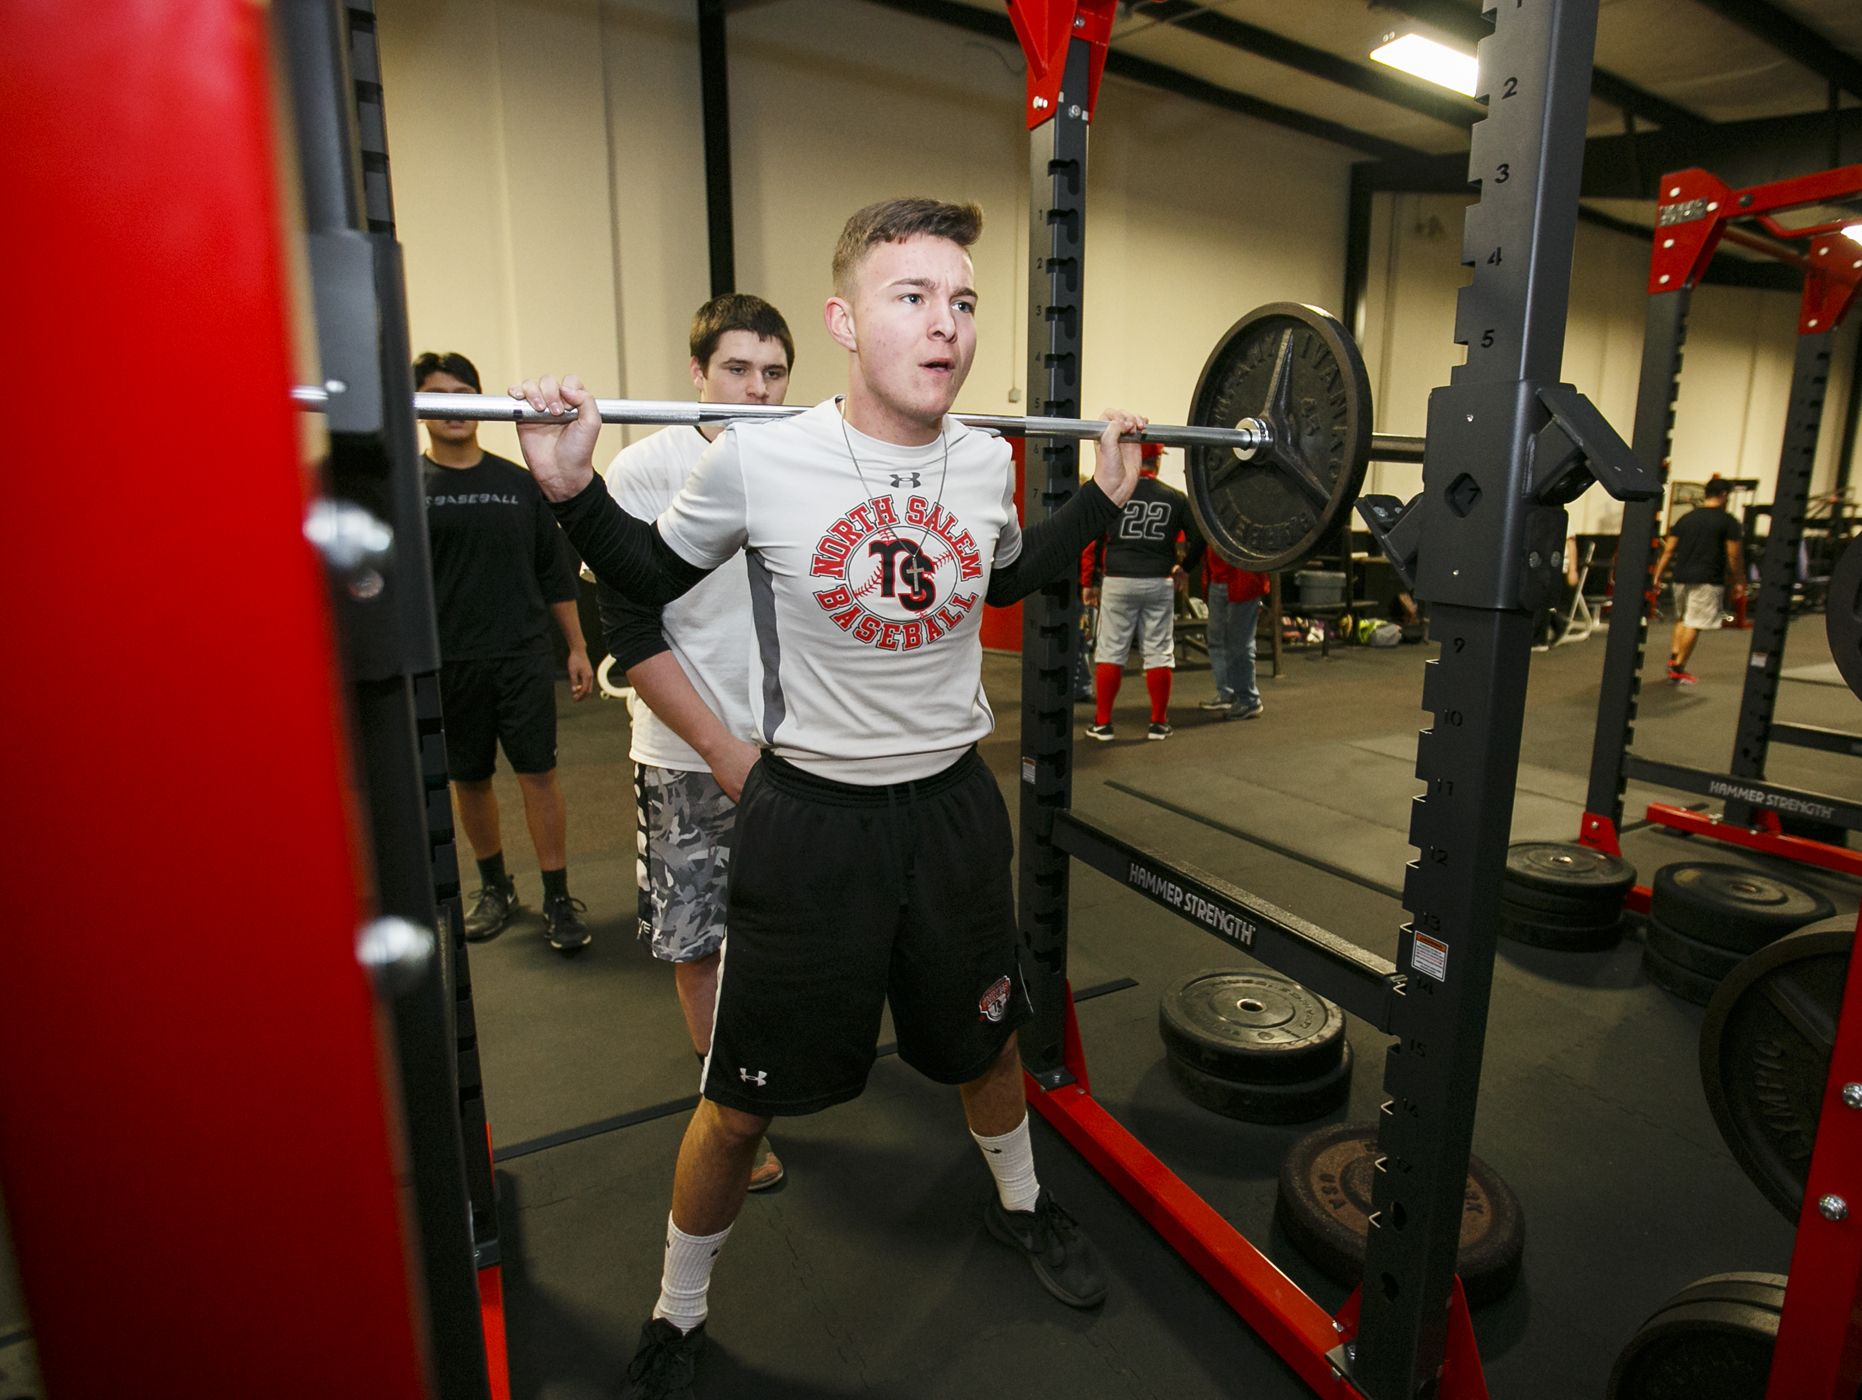 Senior Jared Lund does squats in North Salem High School's newly remodeled weight room on Tuesday, Feb. 14, 2017. The facility includes new rubber floors, eight new weight lifting racks, four new spin bikes and new free weights.